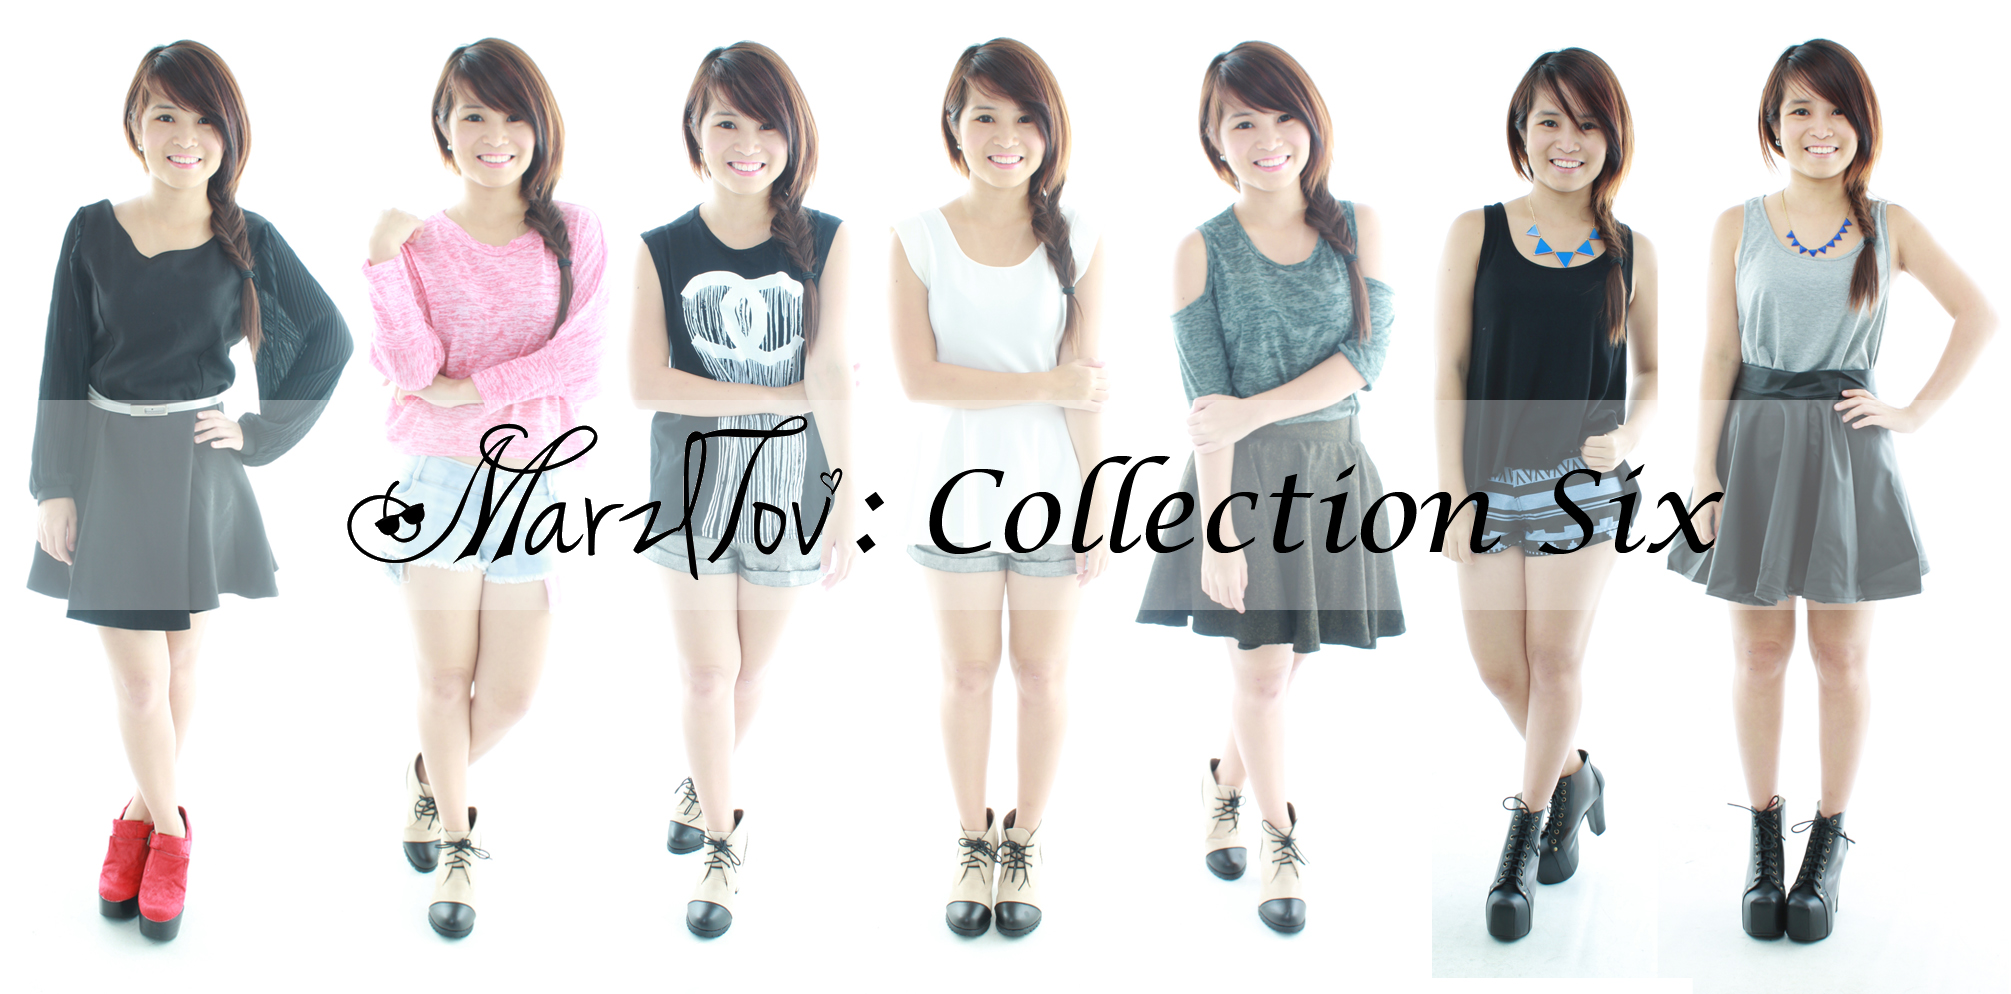 collectionsixoverall